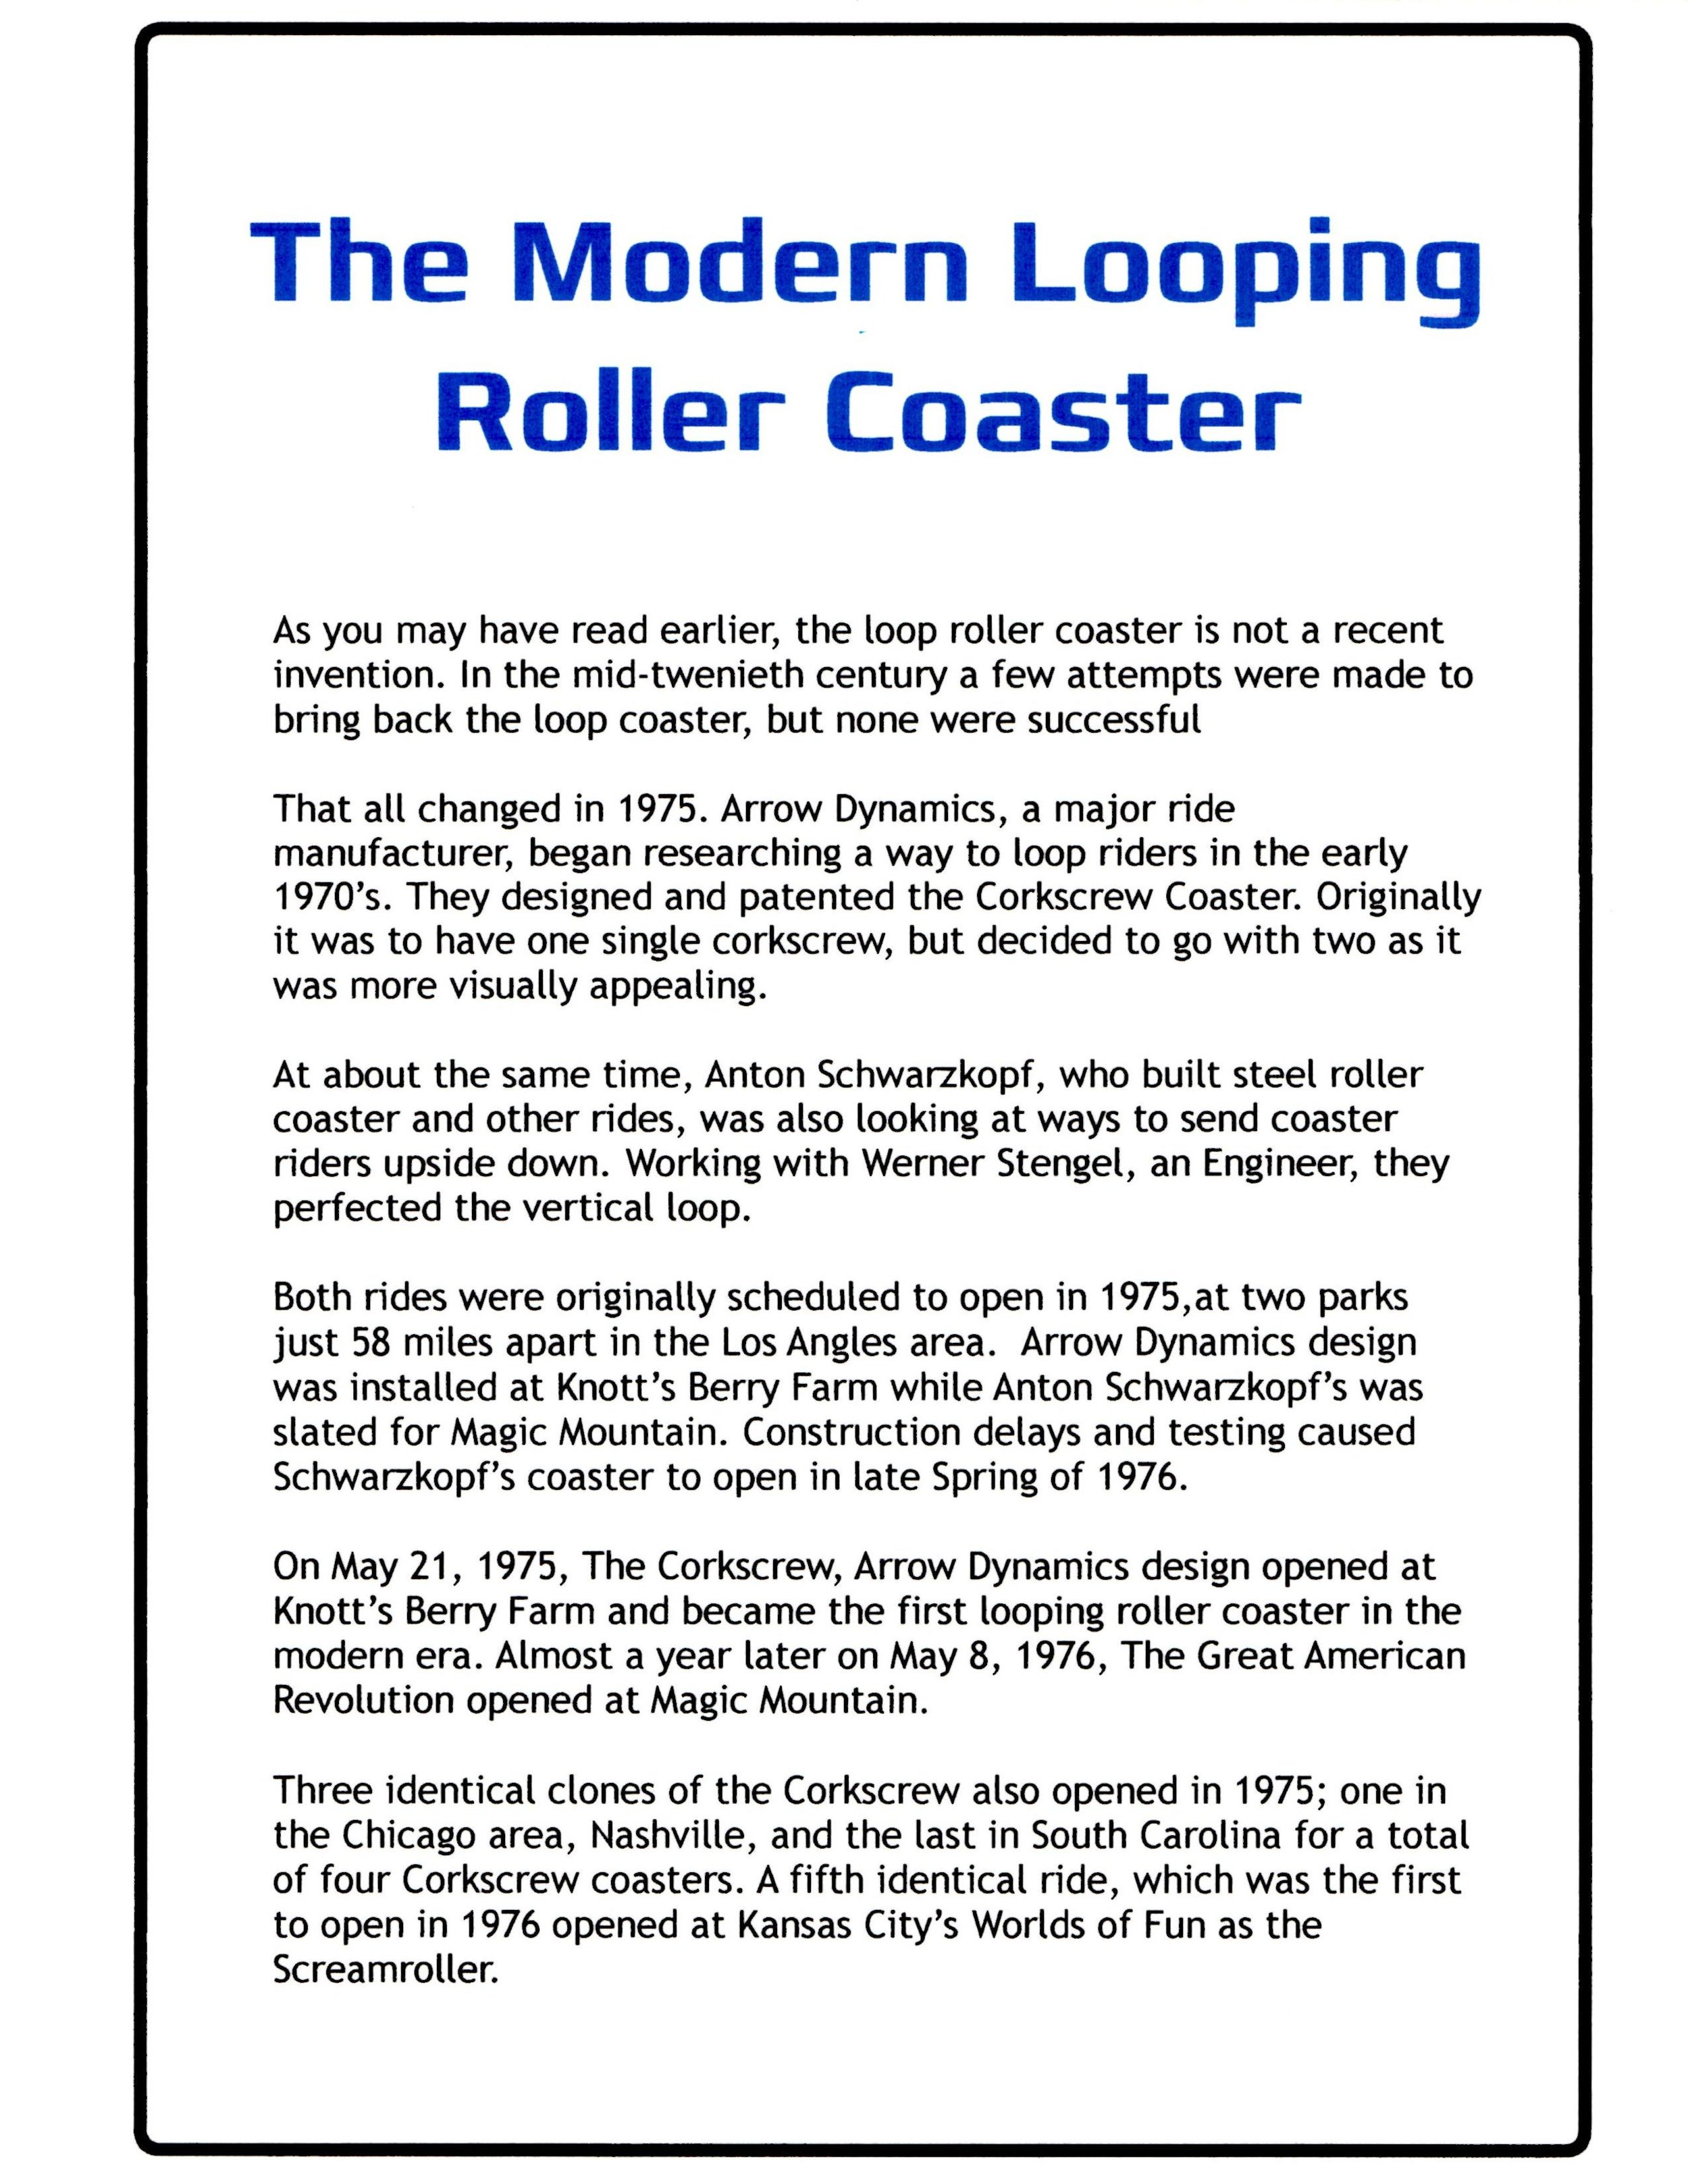 Exhibit - The Modern Looping Roller Coaster